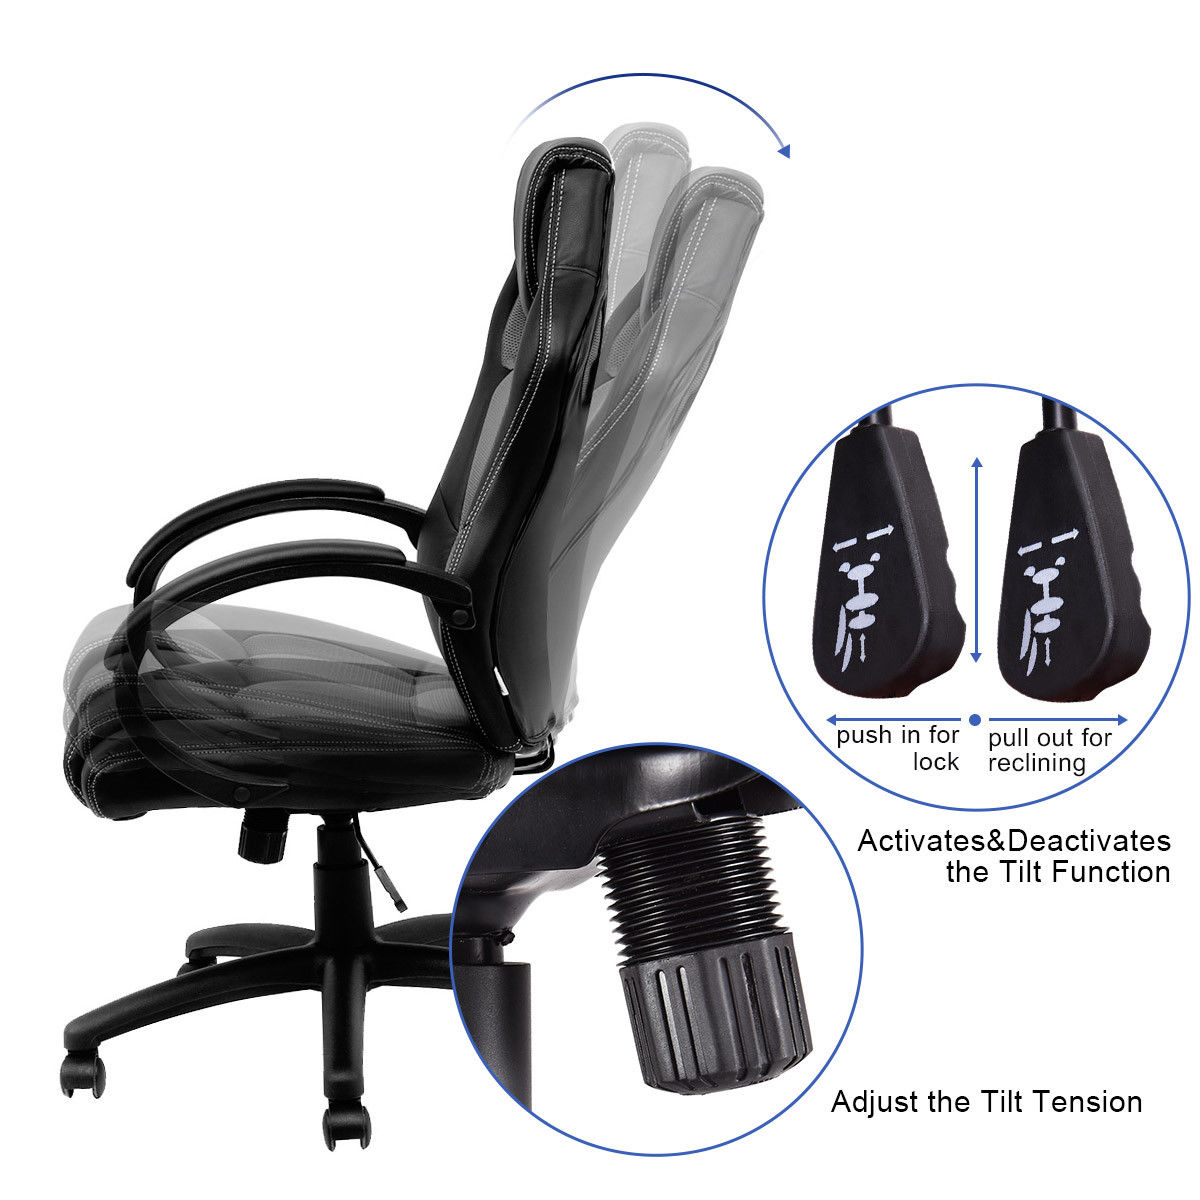 Bucket Racing Chair Metal Arm Covers Giantex High Back Pu Leather Seat Office Computer Desk Gaming Swivel Executive Furniture Hw54590gr In Chairs From